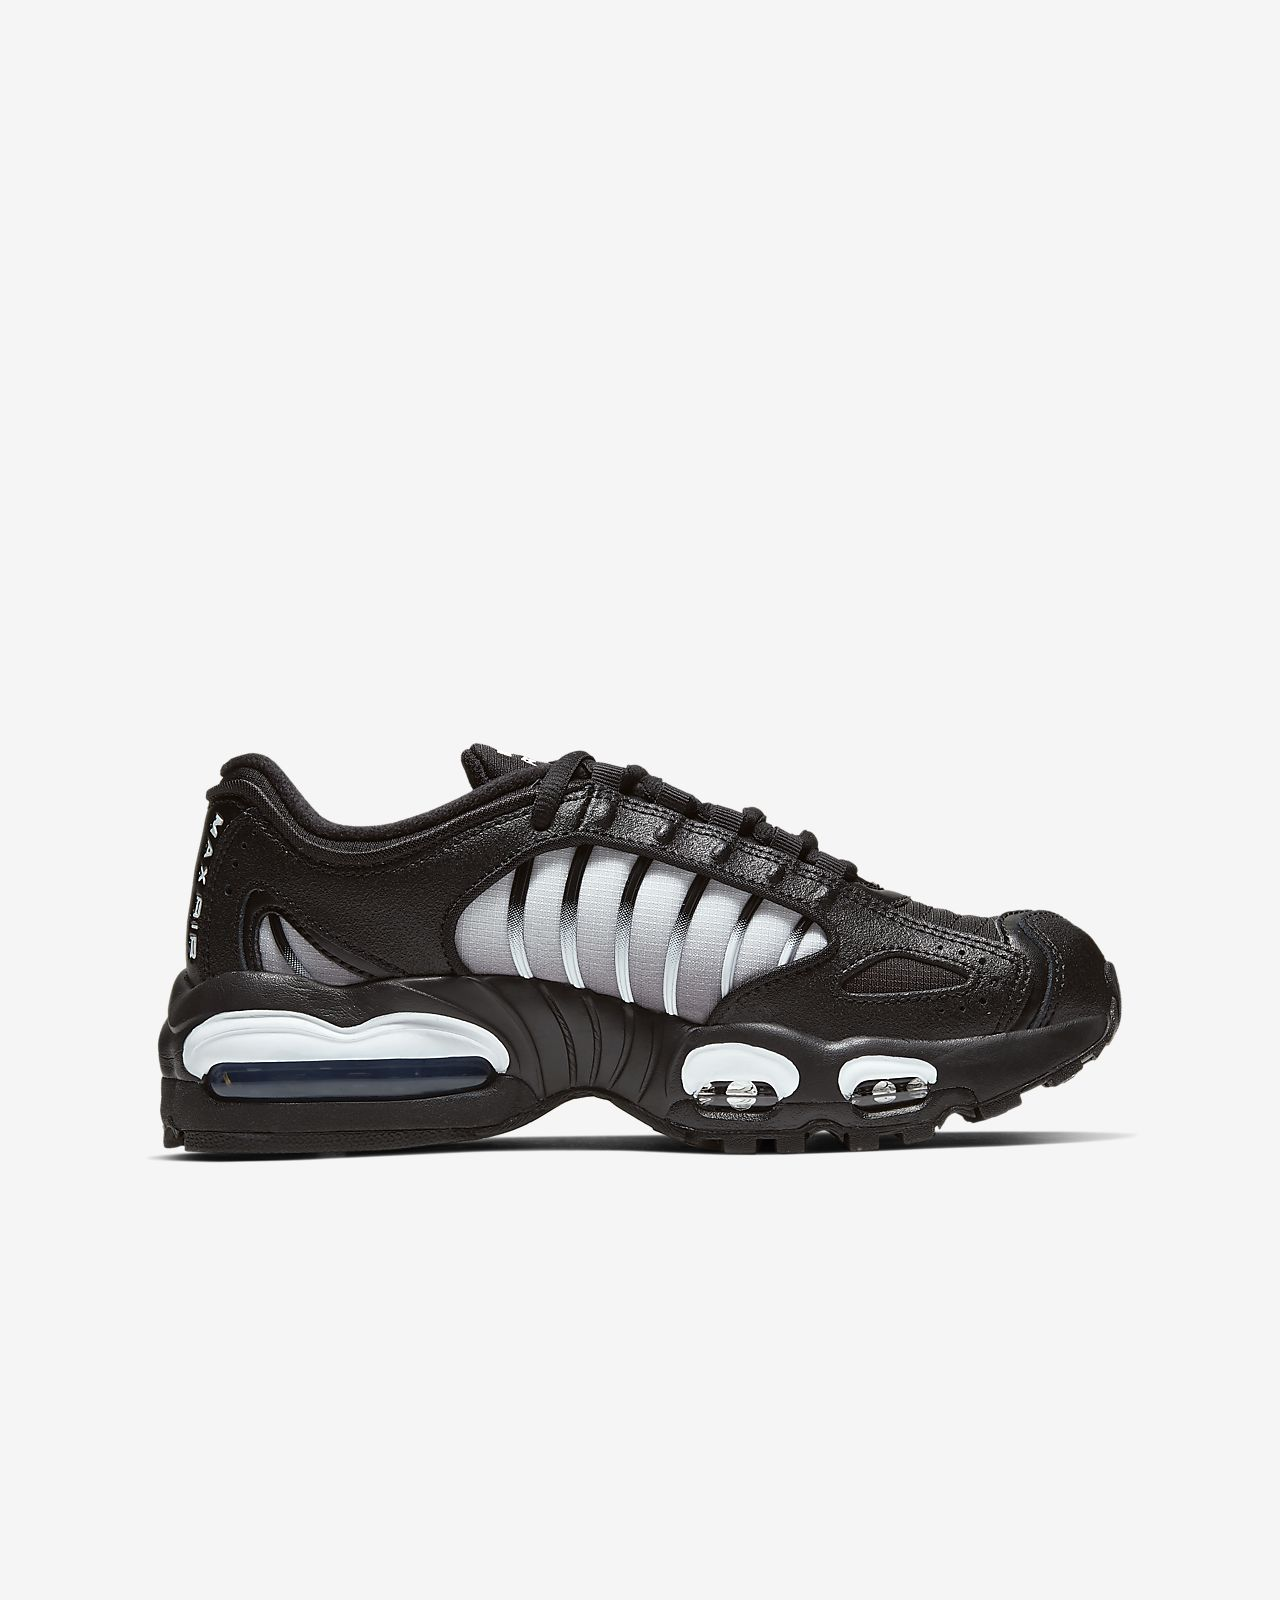 The Nike Air Max Tailwind 4 Retro is Ready to Re Release in